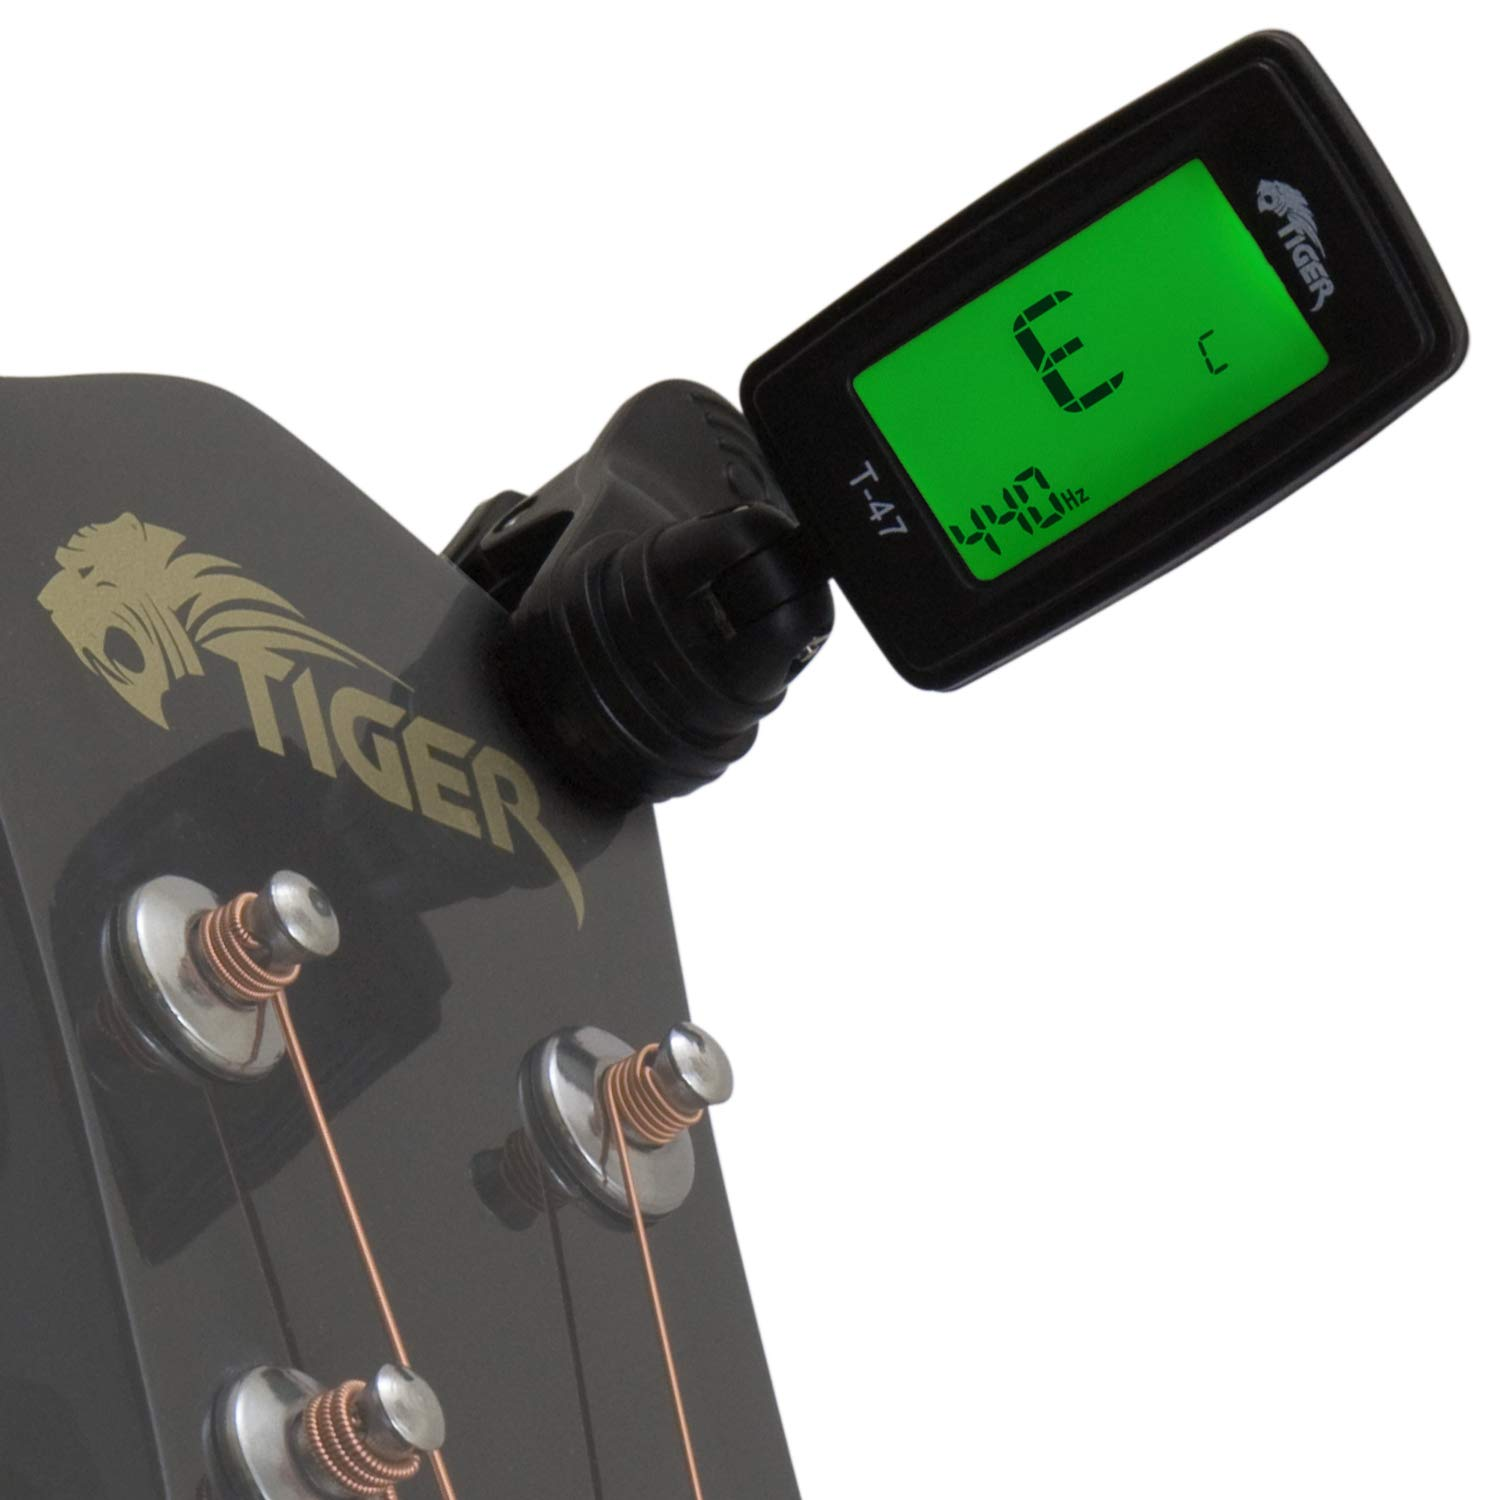 Tiger Clip-On Guitar Tuner - Chromatic Tuner for Guitar, Ukulele and Violin Tiger Music T-47